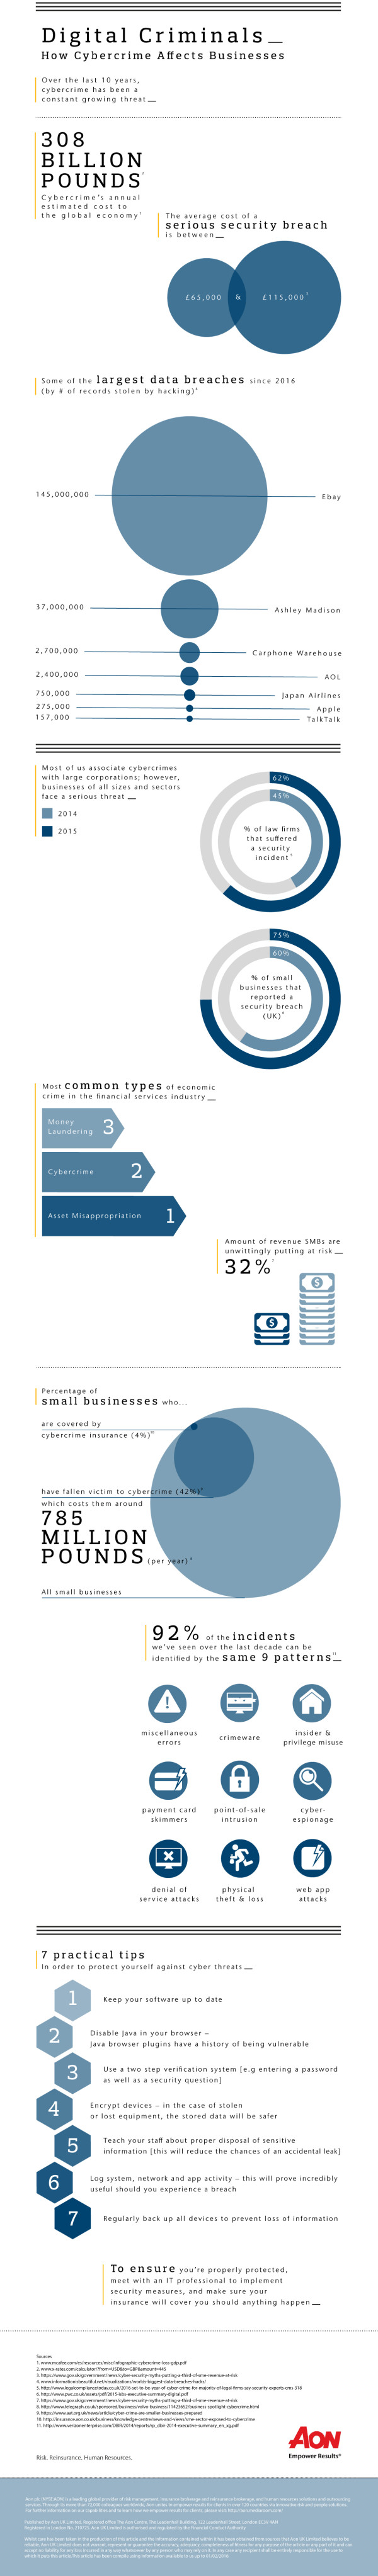 business_cyber_crime_infographic